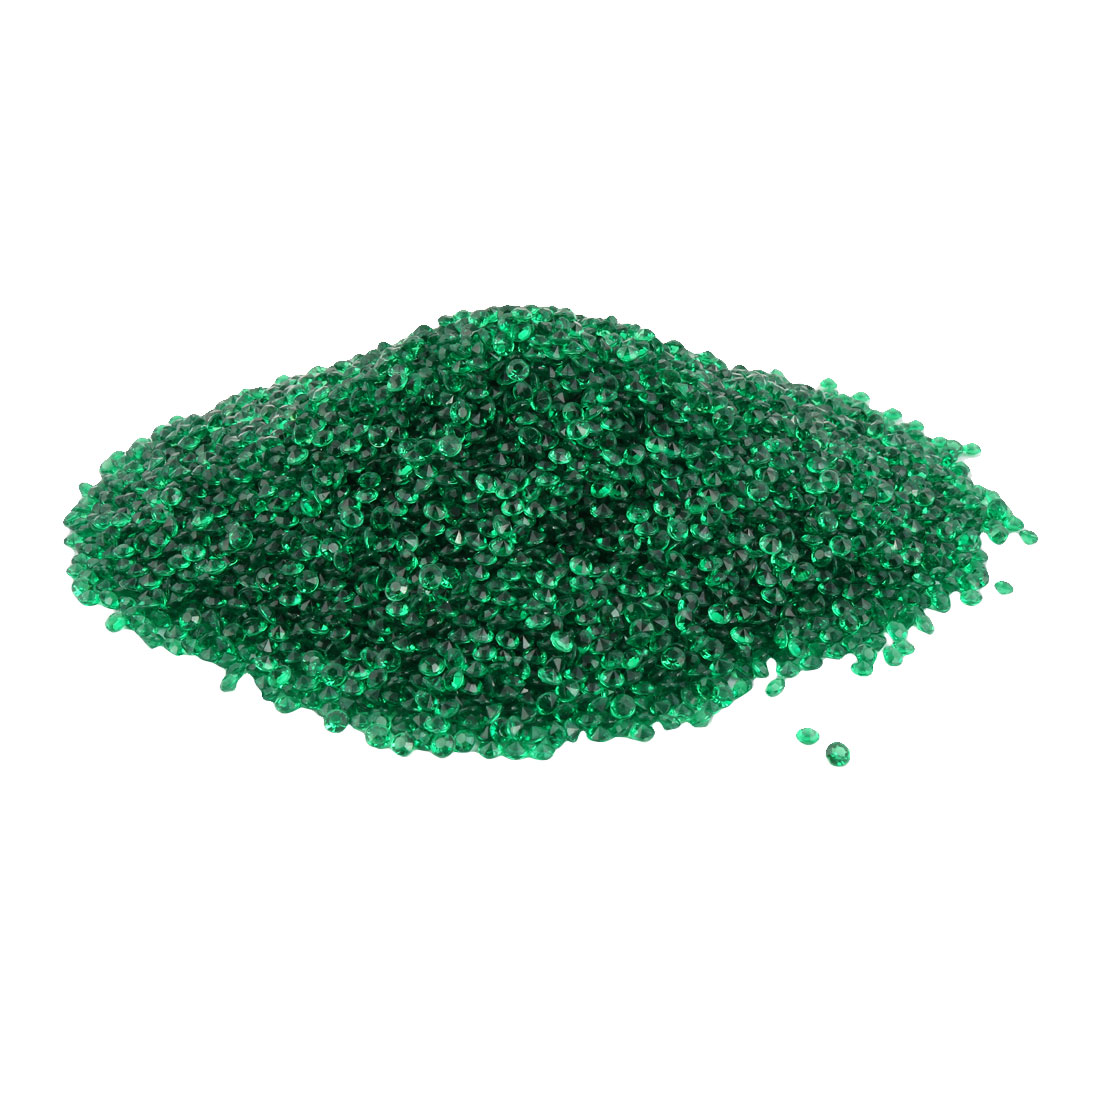 Plastic Crystal Confetti Wedding Party Decoration Green 4.5mm Diameter 10000 Pcs